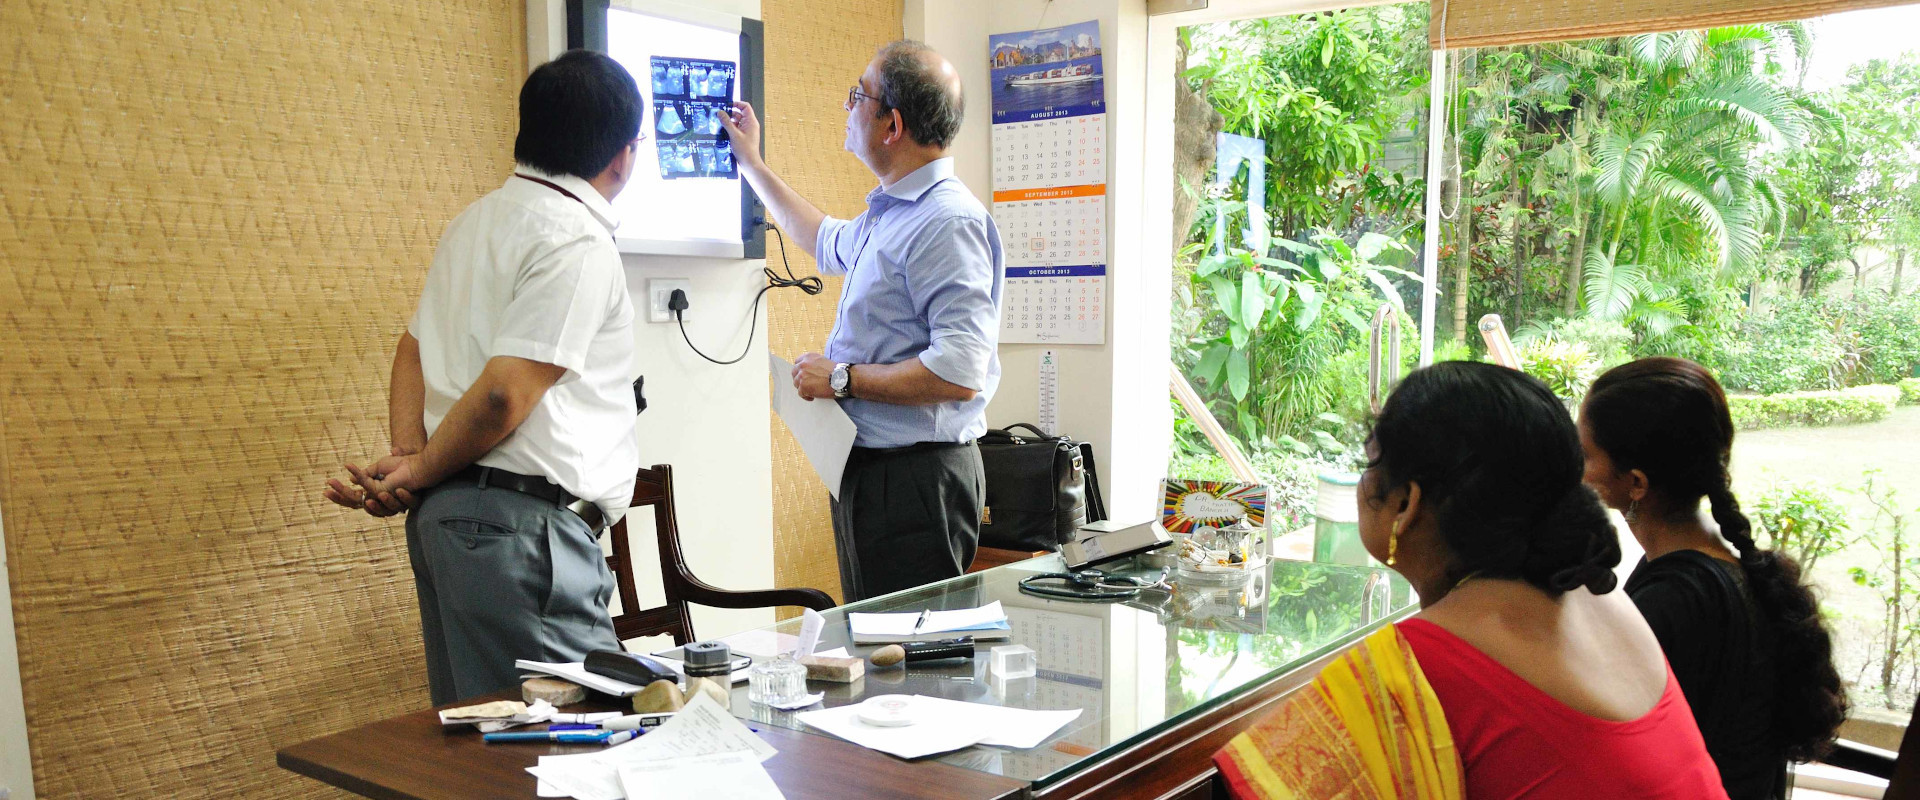 20190909-pbhrf-homepage-banner-doctor-at-chamber